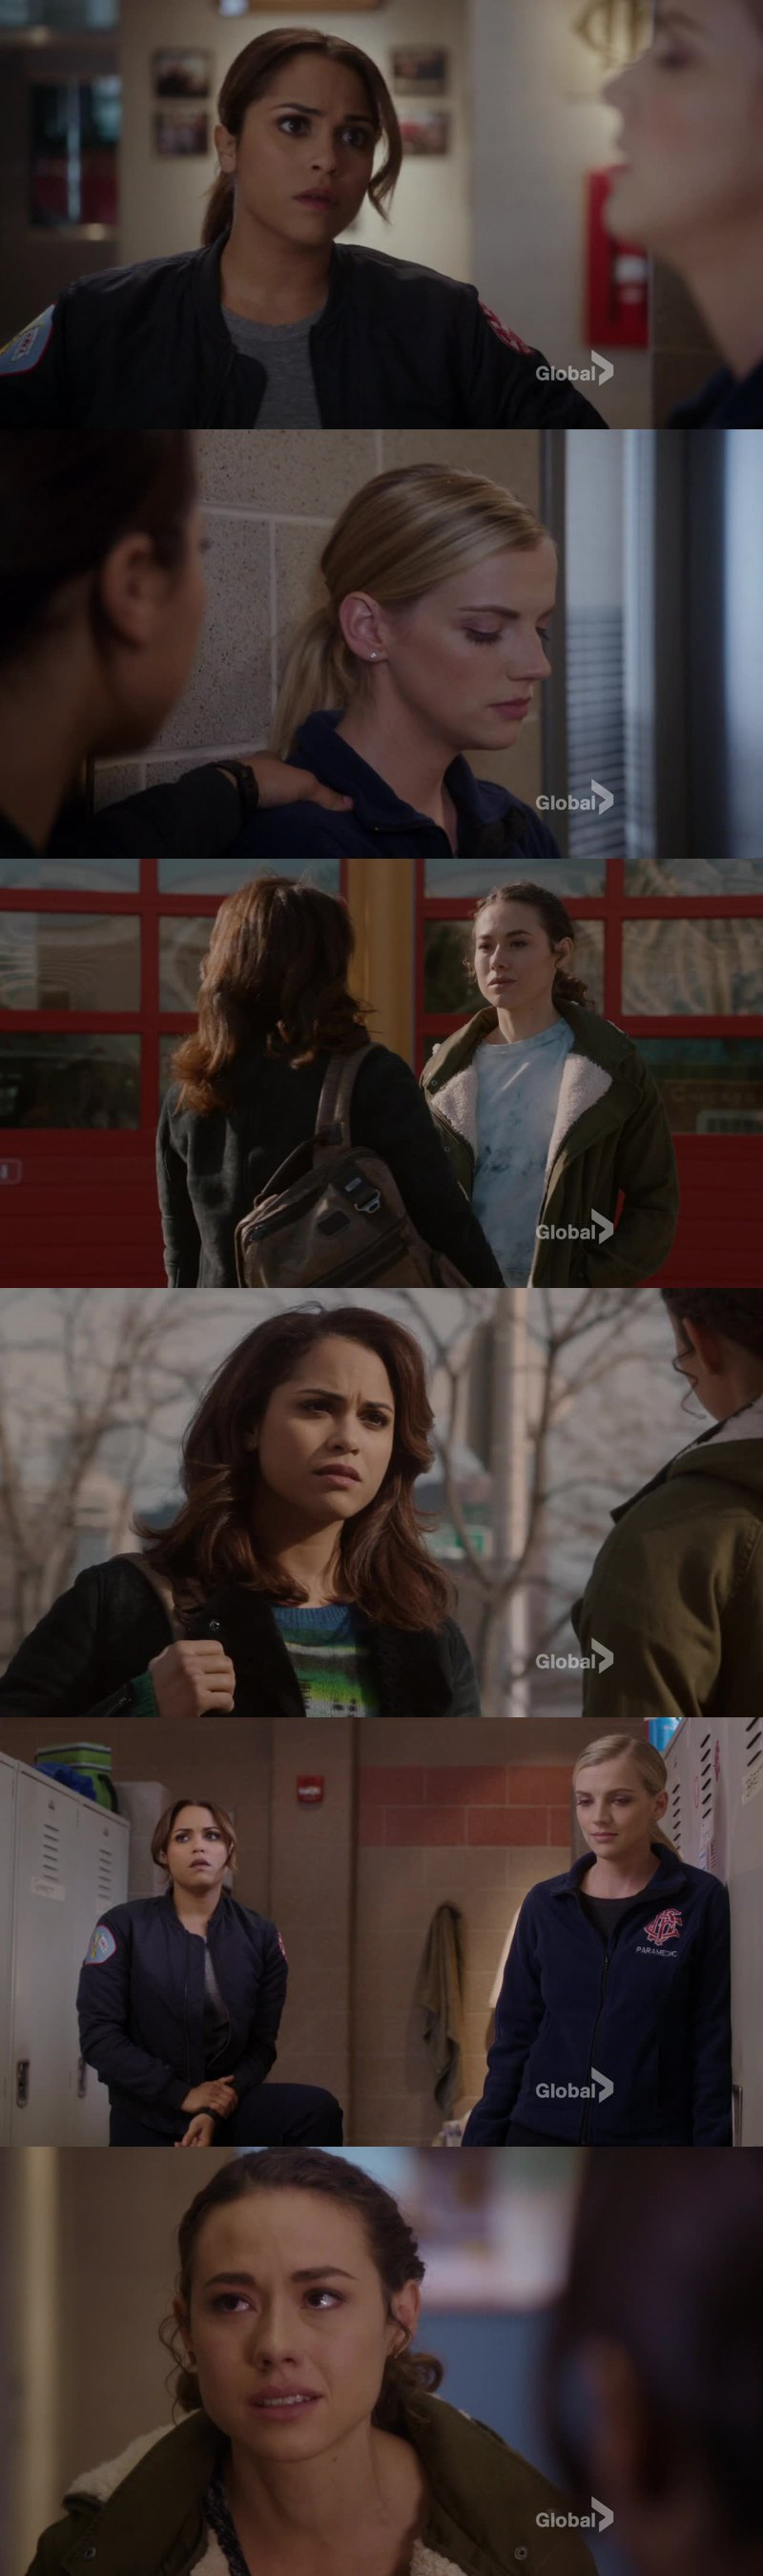 That episode was very touch but I have to say that it was good to see the ladies together. I love when Brett and Dawson are having a moment. I think that was the first time Dawson and Chili had a moment (and there was a reference of Shay 😭😭😭) and then a scene with only Dawson, Brett and Chili. Probably the first time as well. So much testosterone on that show that it's good to have ladies time sometimes. Better be more please!! And they are an example and inspiration for women who want to get into that field job.